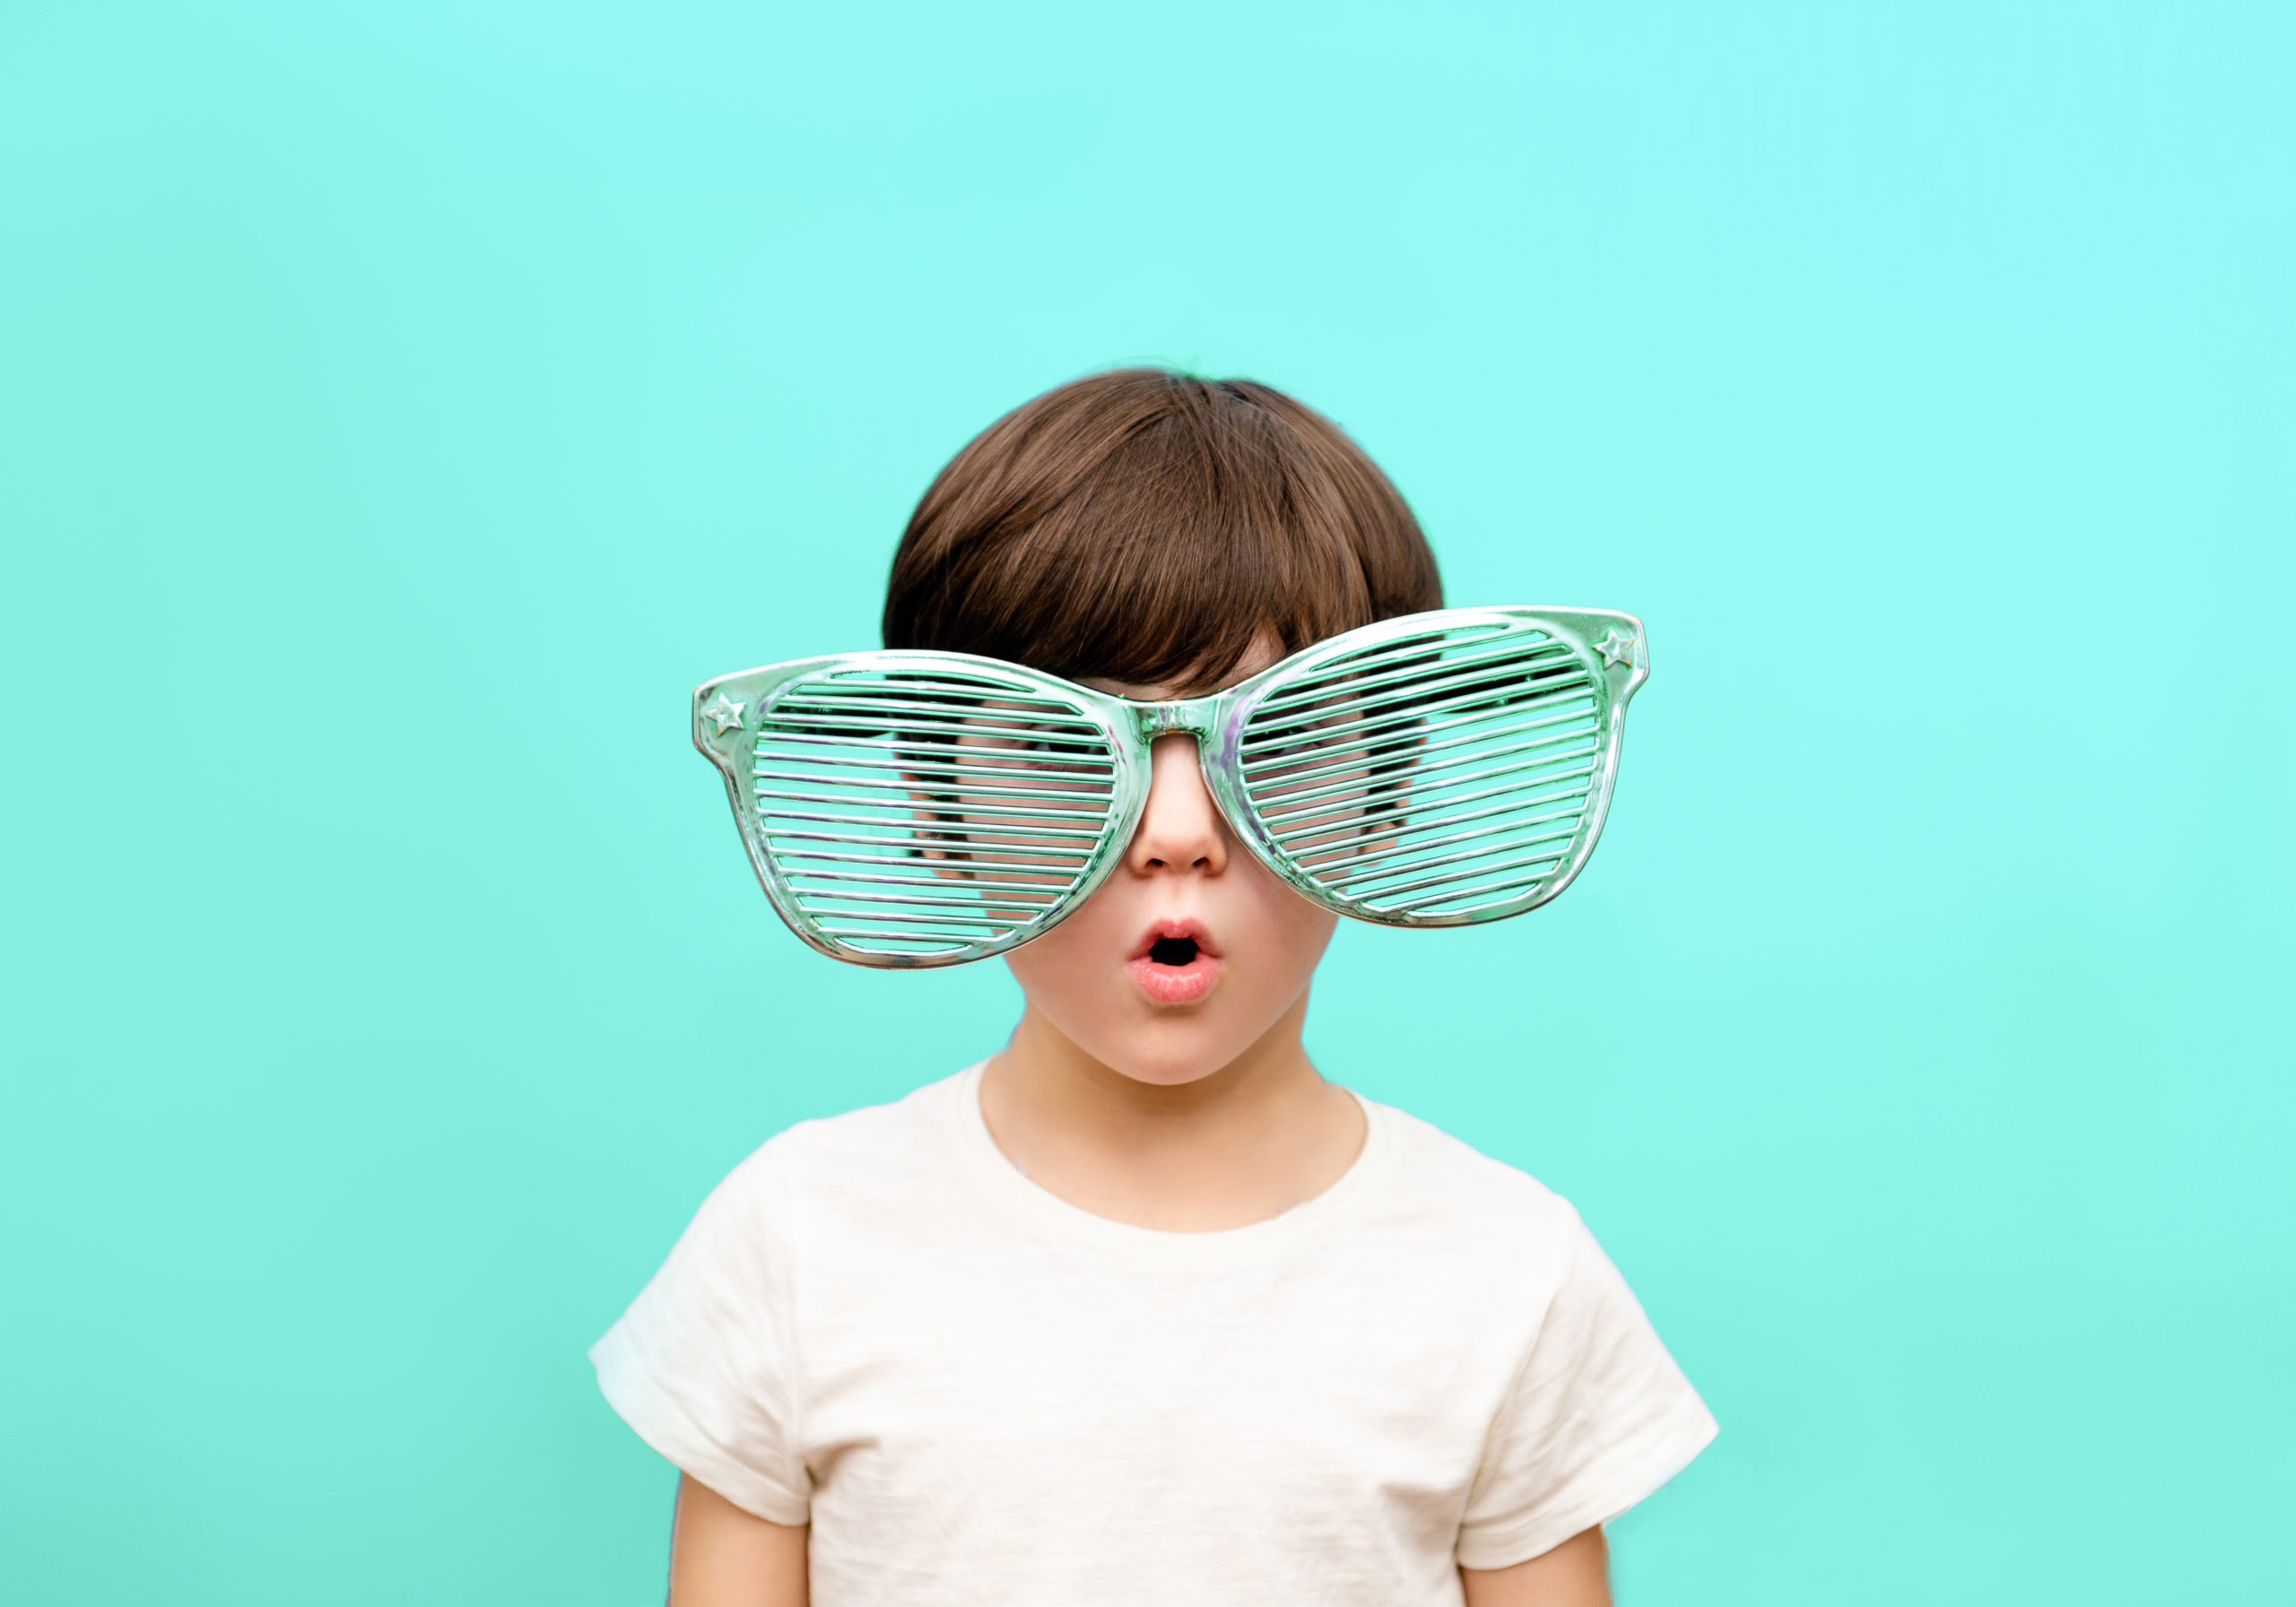 Cheerful little boy in big glasses express a surprised face isolated on blue background